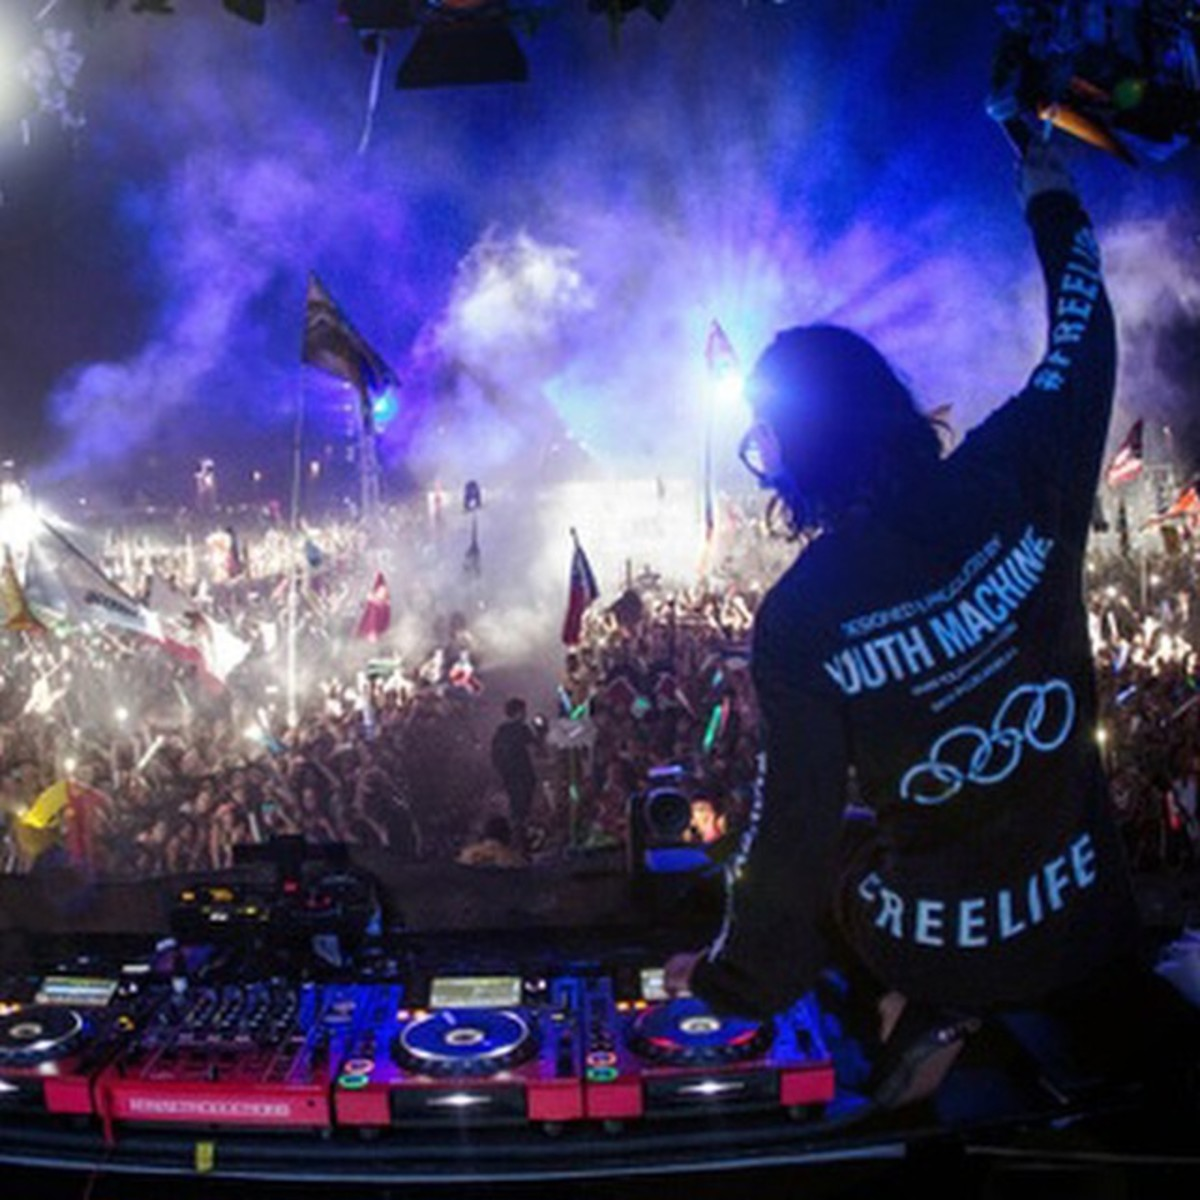 Skrillex's view from the stage